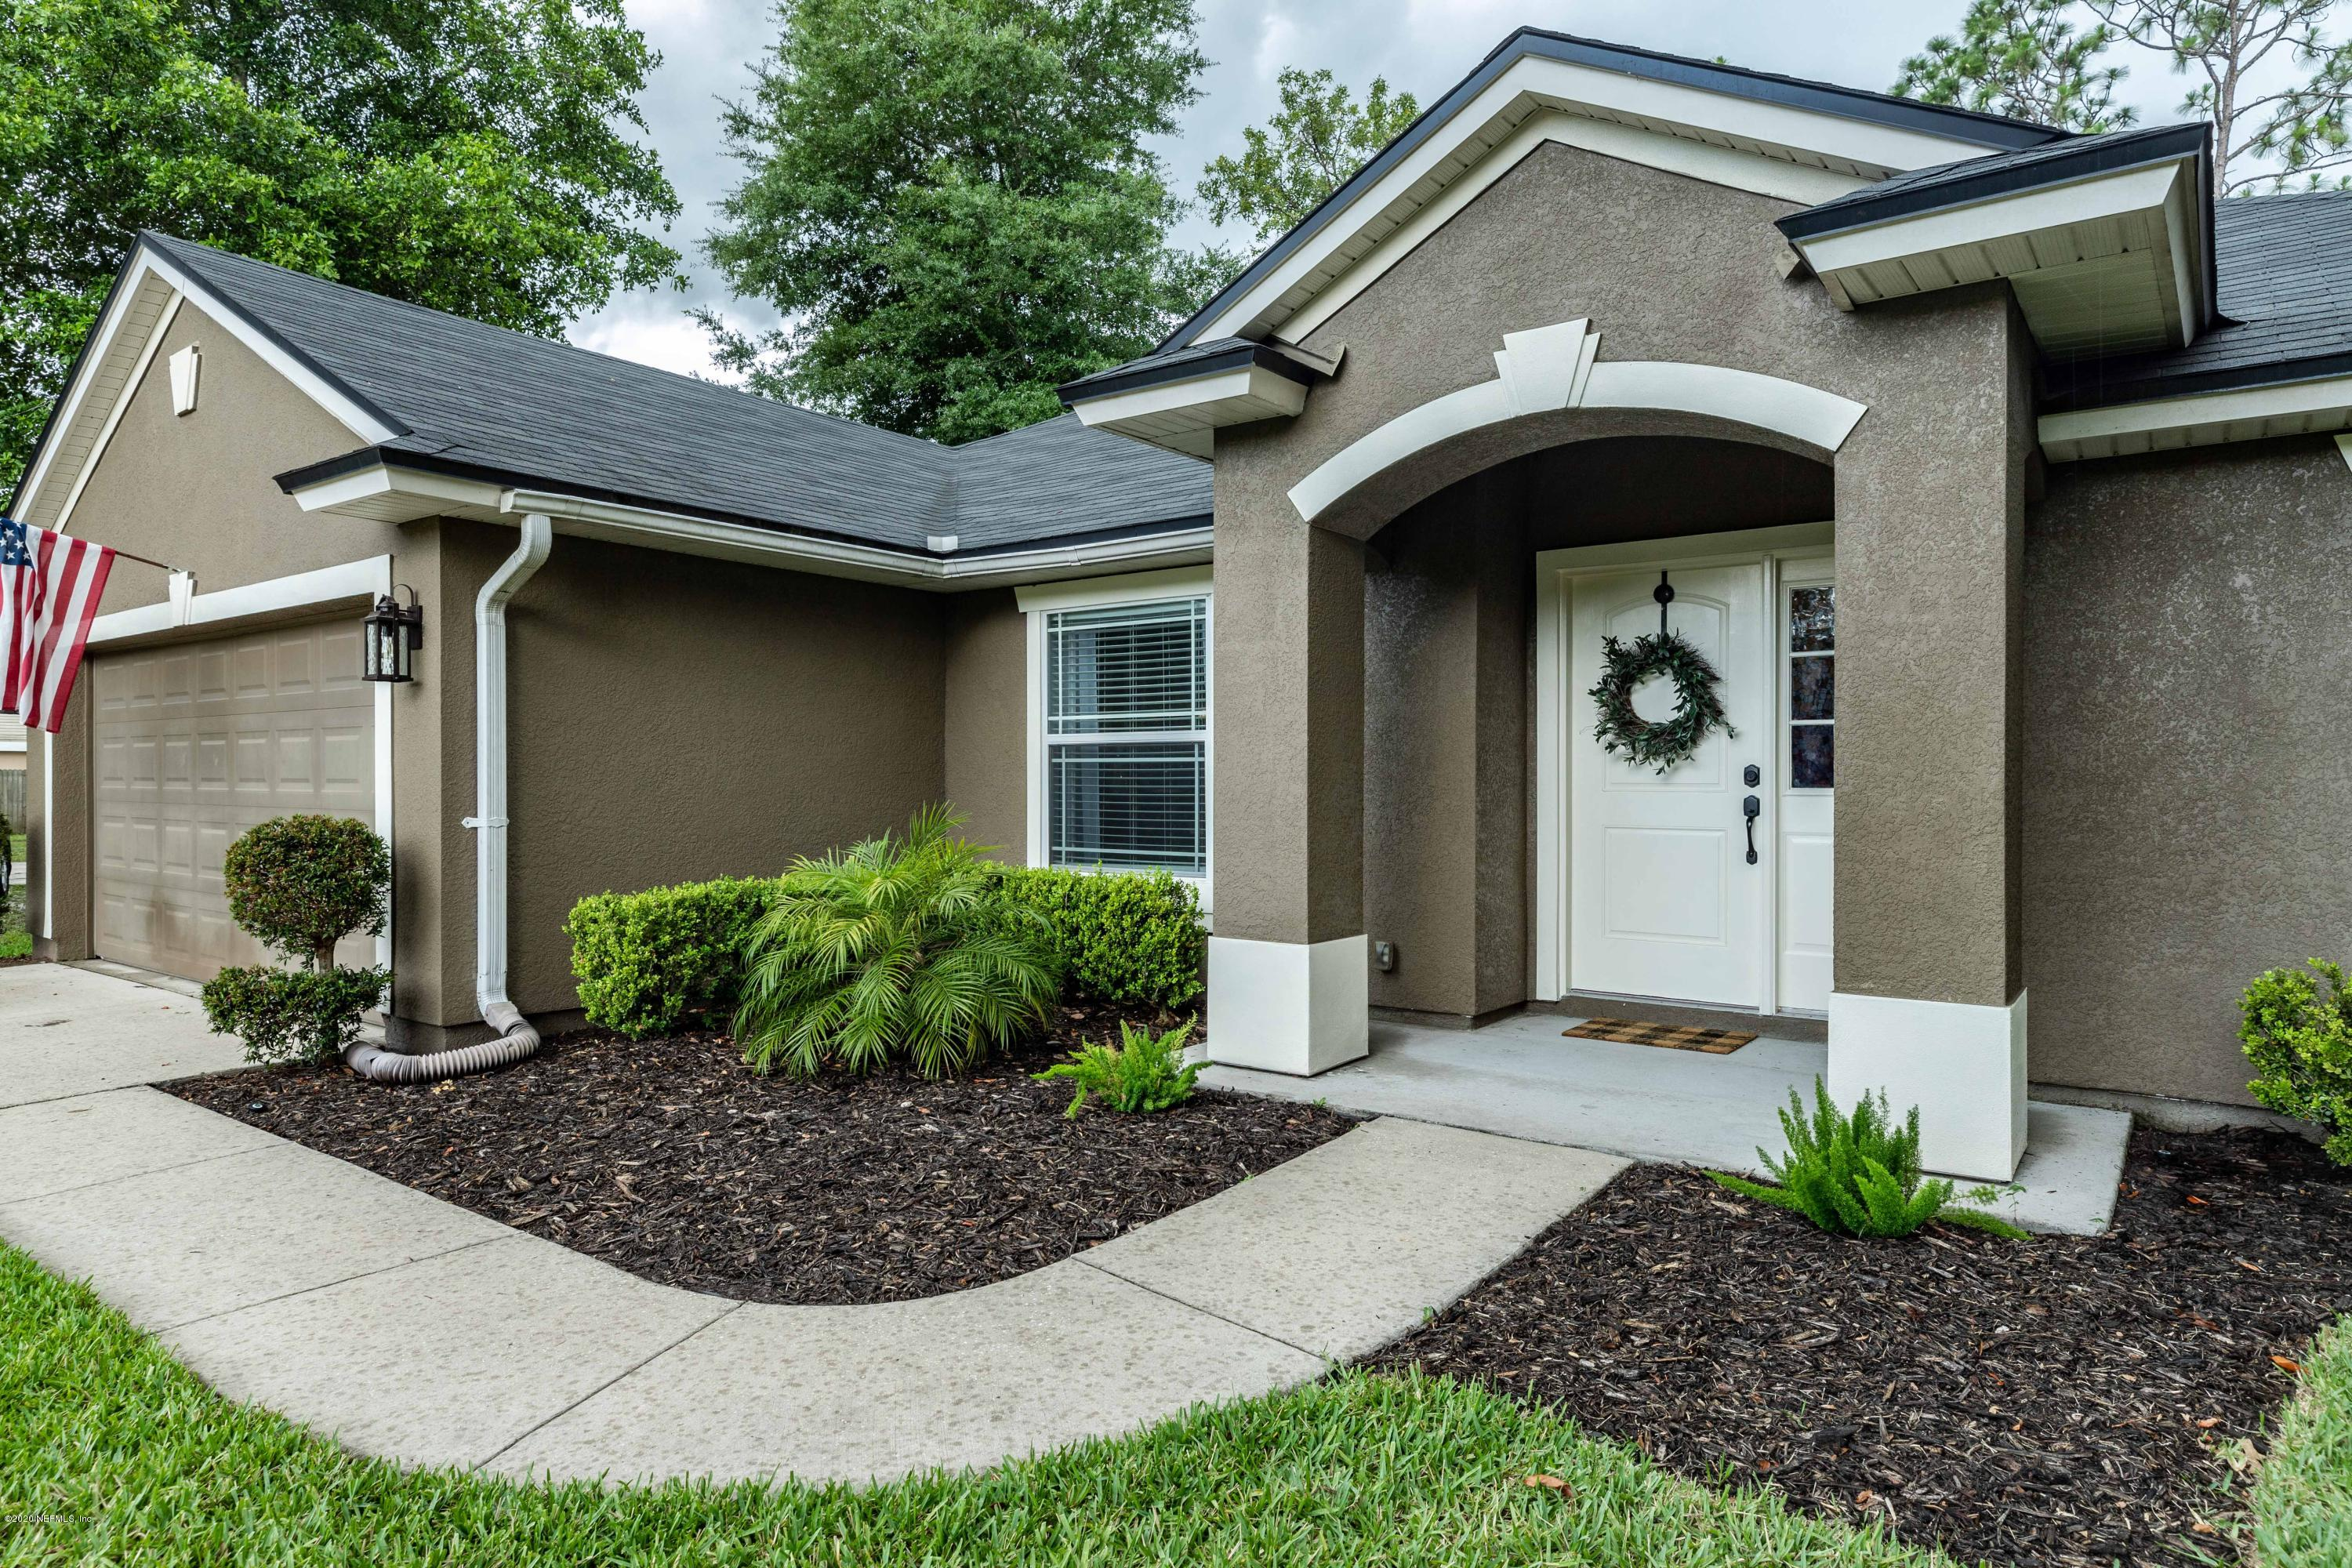 Image 1 For 12612 Caron Dr